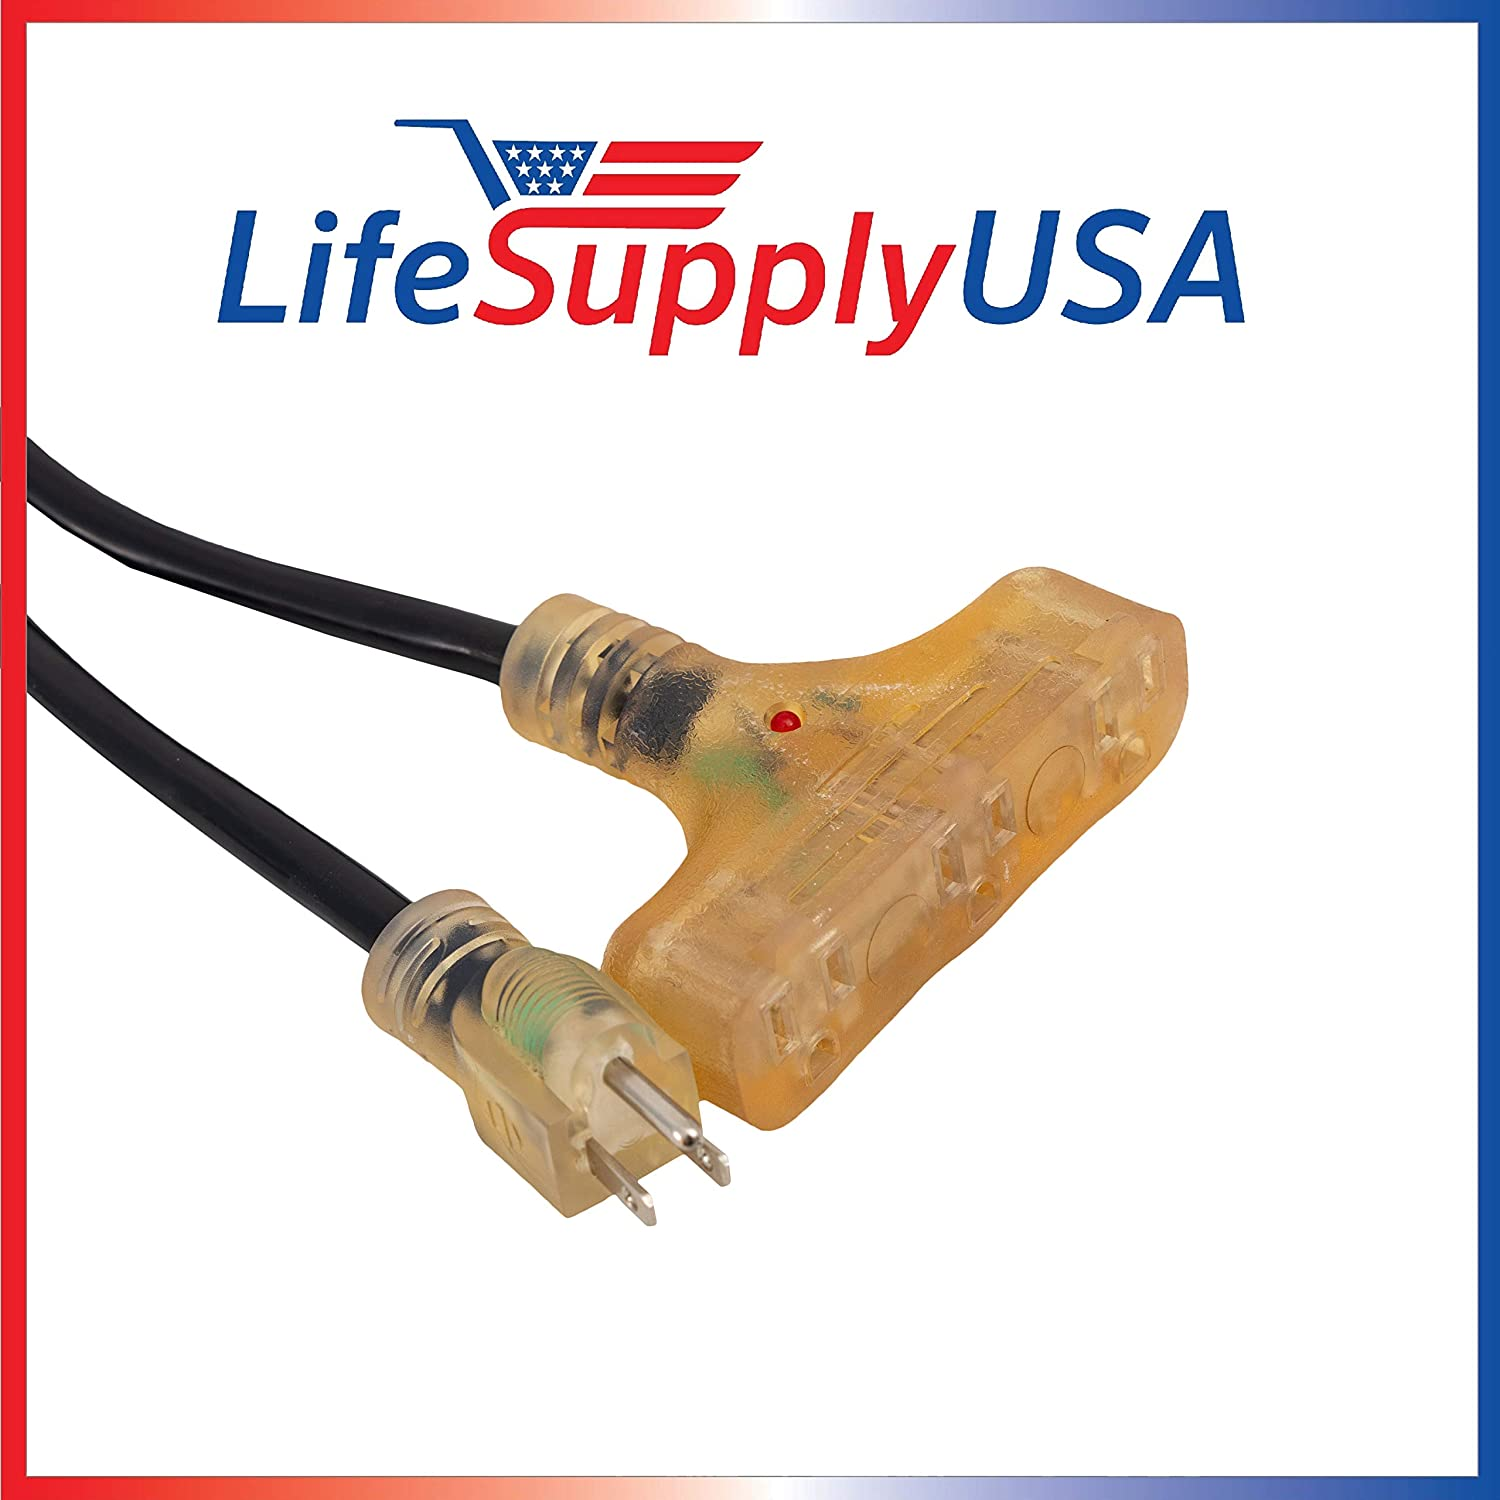 3 Feet 12//3 3ft 3-Outlet SJTW 15A 125V 1875W Lighted End Indoor//Outdoor Black Heavy Duty Tri-Source Extension Cord LifeSupplyUSA